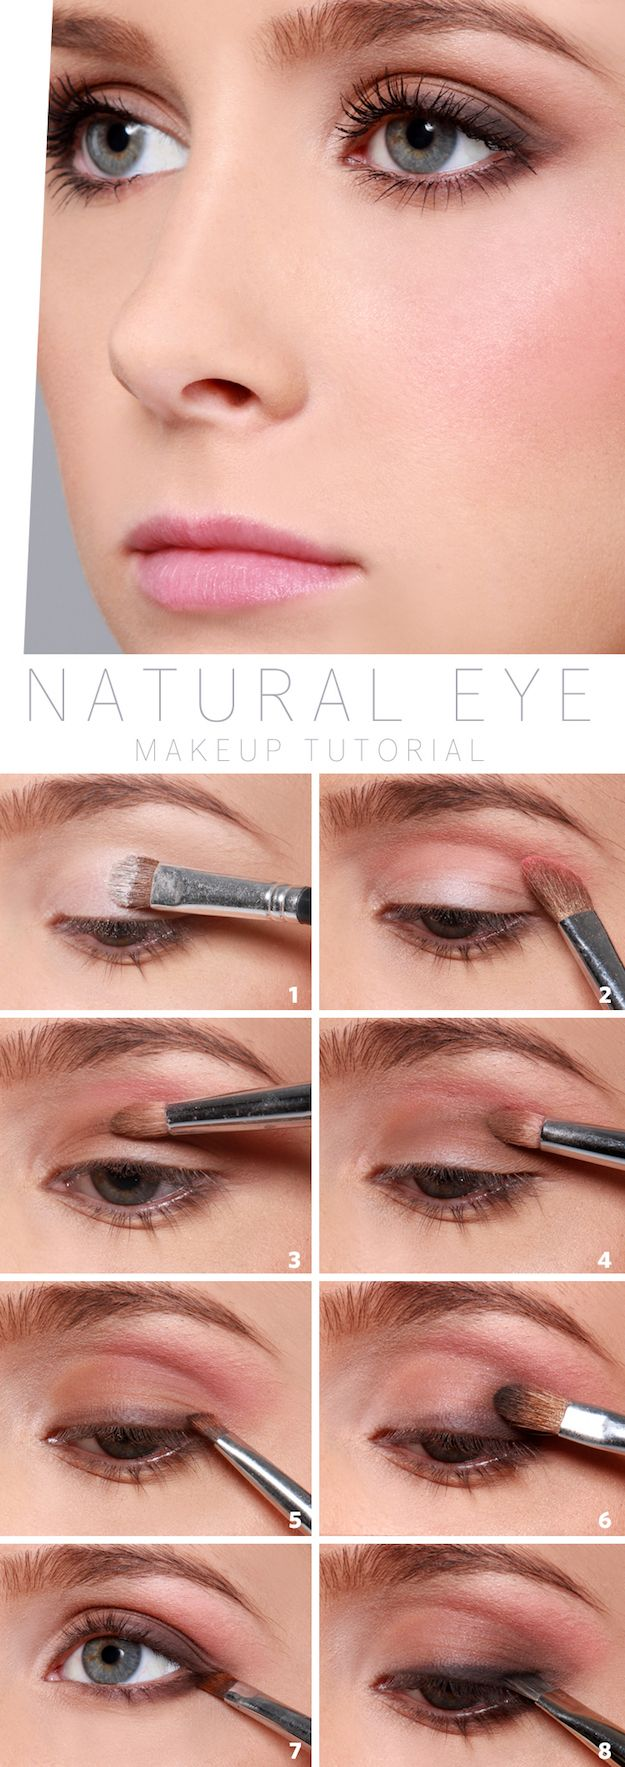 30 Wedding Makeup Ideas for Brides | Glow, Romantic and Eyes